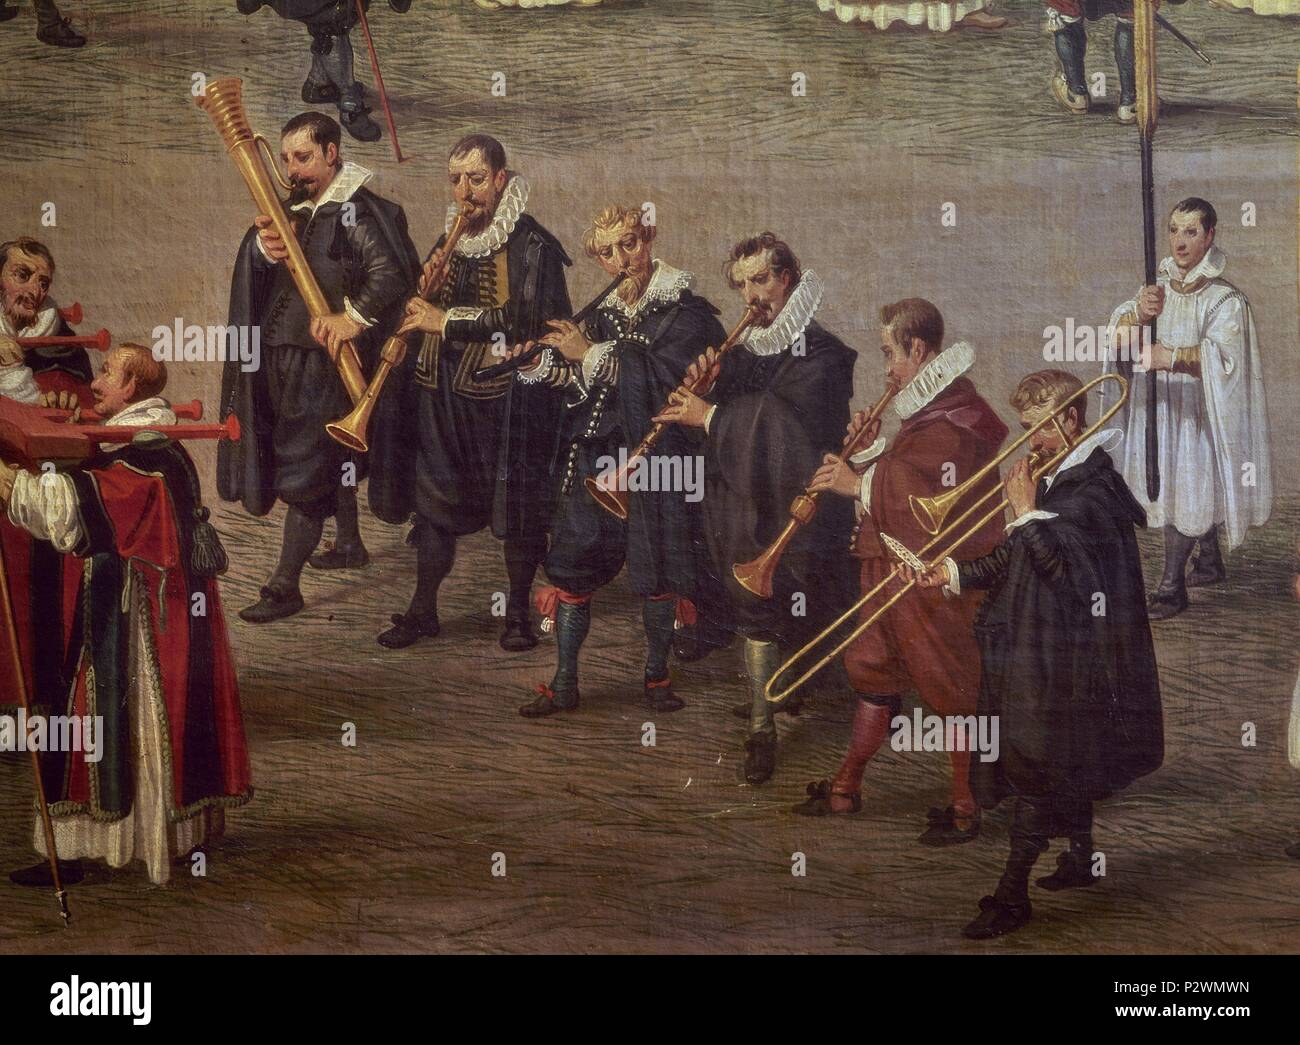 Pinturas Del Museo Del Prado Madrid Gola Music Stock Photos And Gola Music Stock Images Alamy